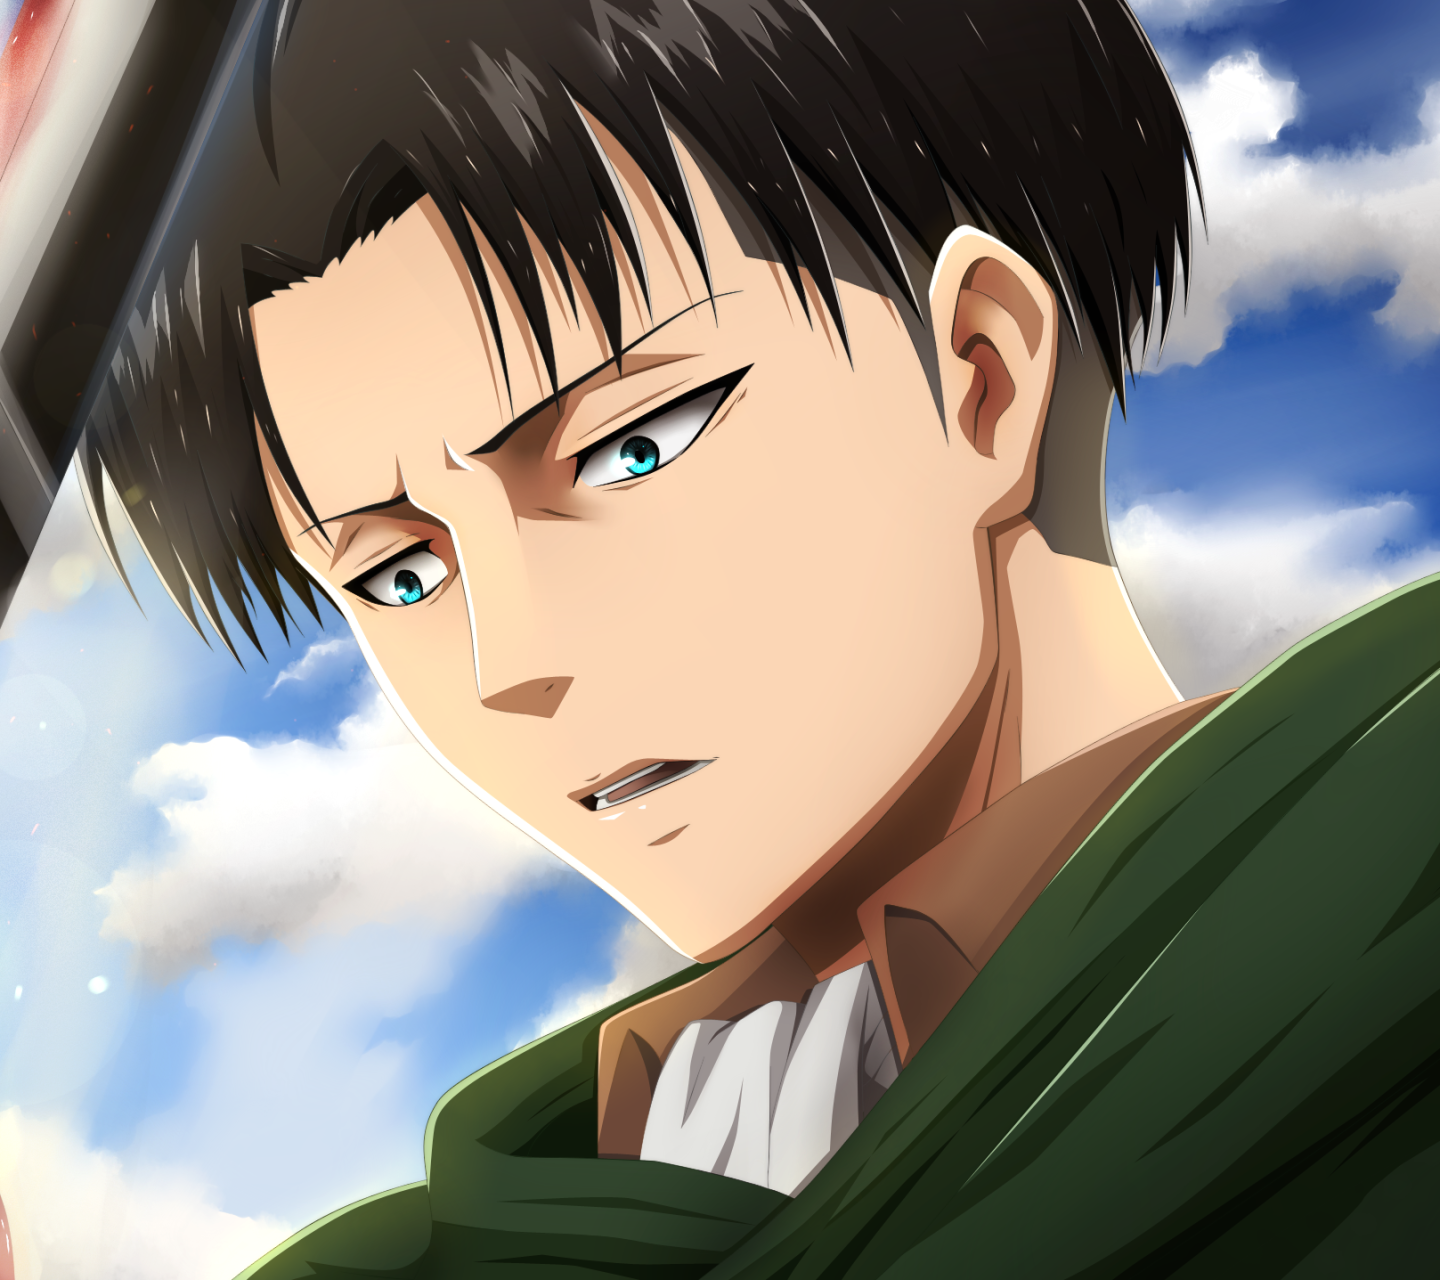 Download This Wallpaper Anime Attack On Titan 1440x1280 For All Your Phones And Tablets Attack On Titan Attack On Titan Levi Levi Ackerman